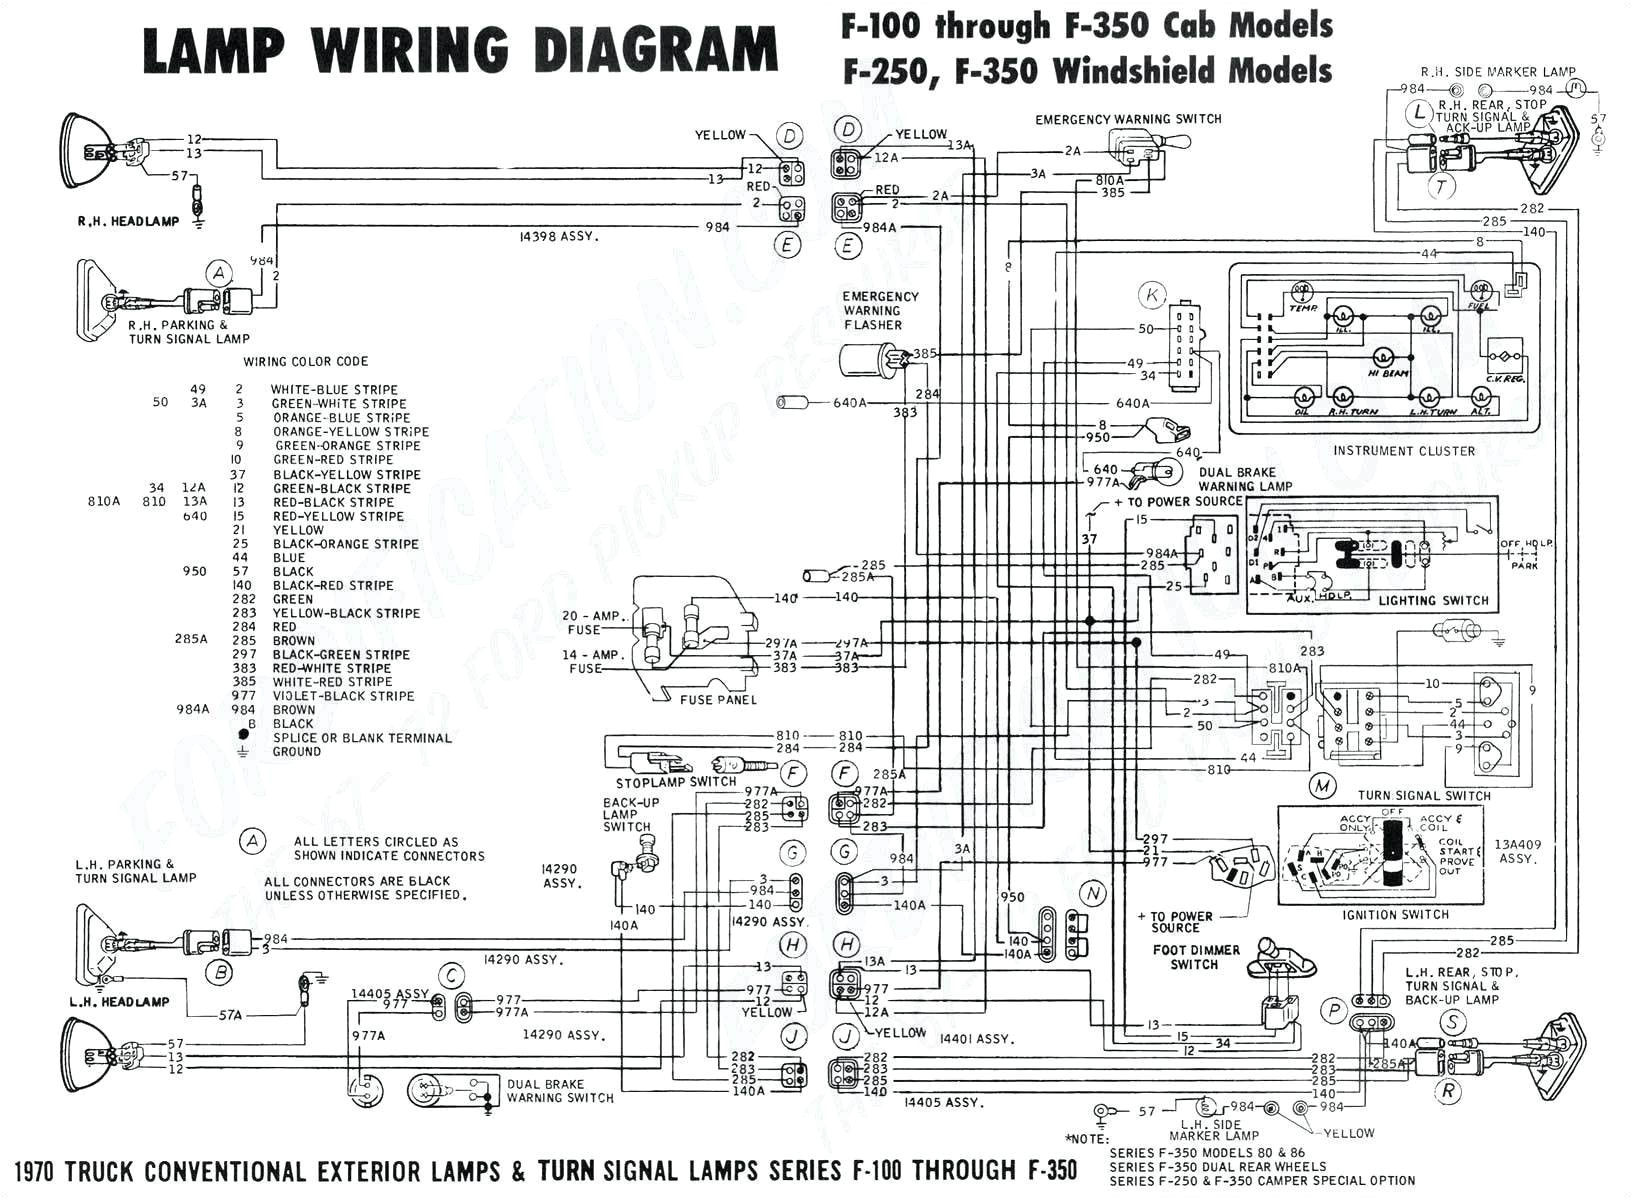 Vw Golf 5 Wiring Diagram Vw R32 Wiring Diagram Wiring Diagram Database